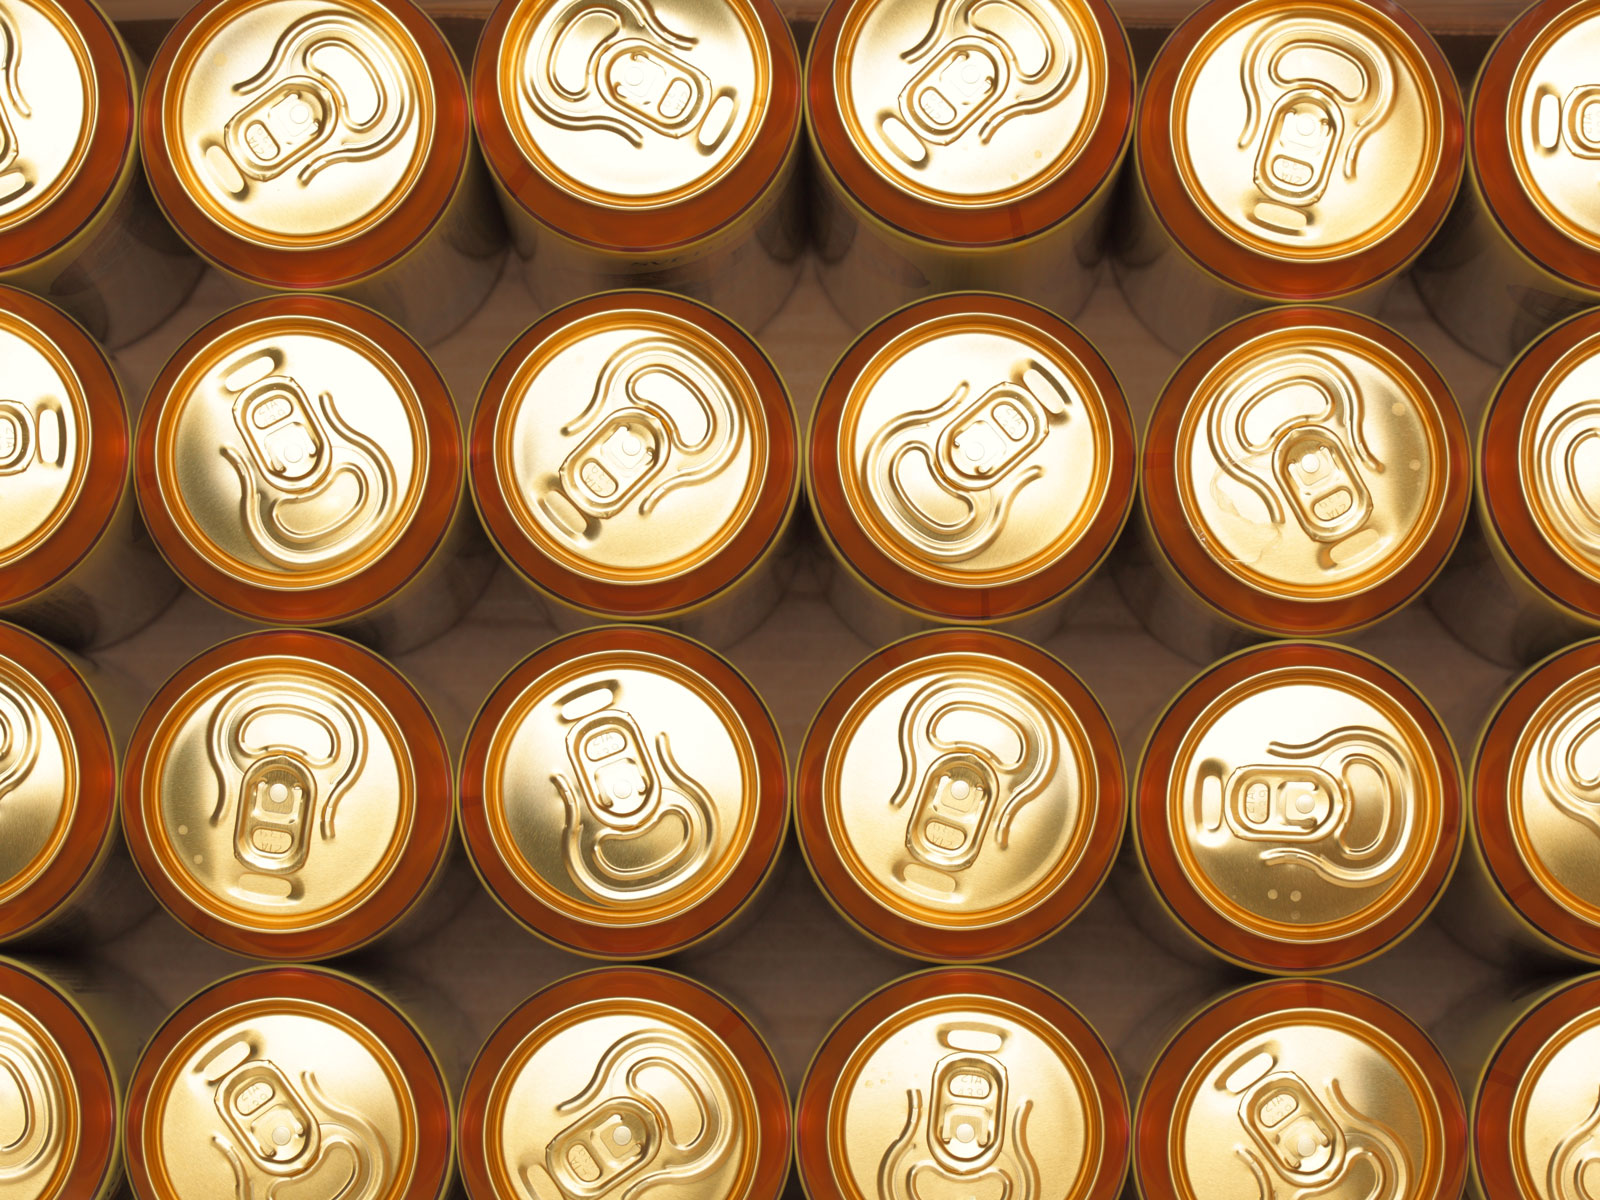 This Beer Is Being Recalled for 'Risk of Explosion'